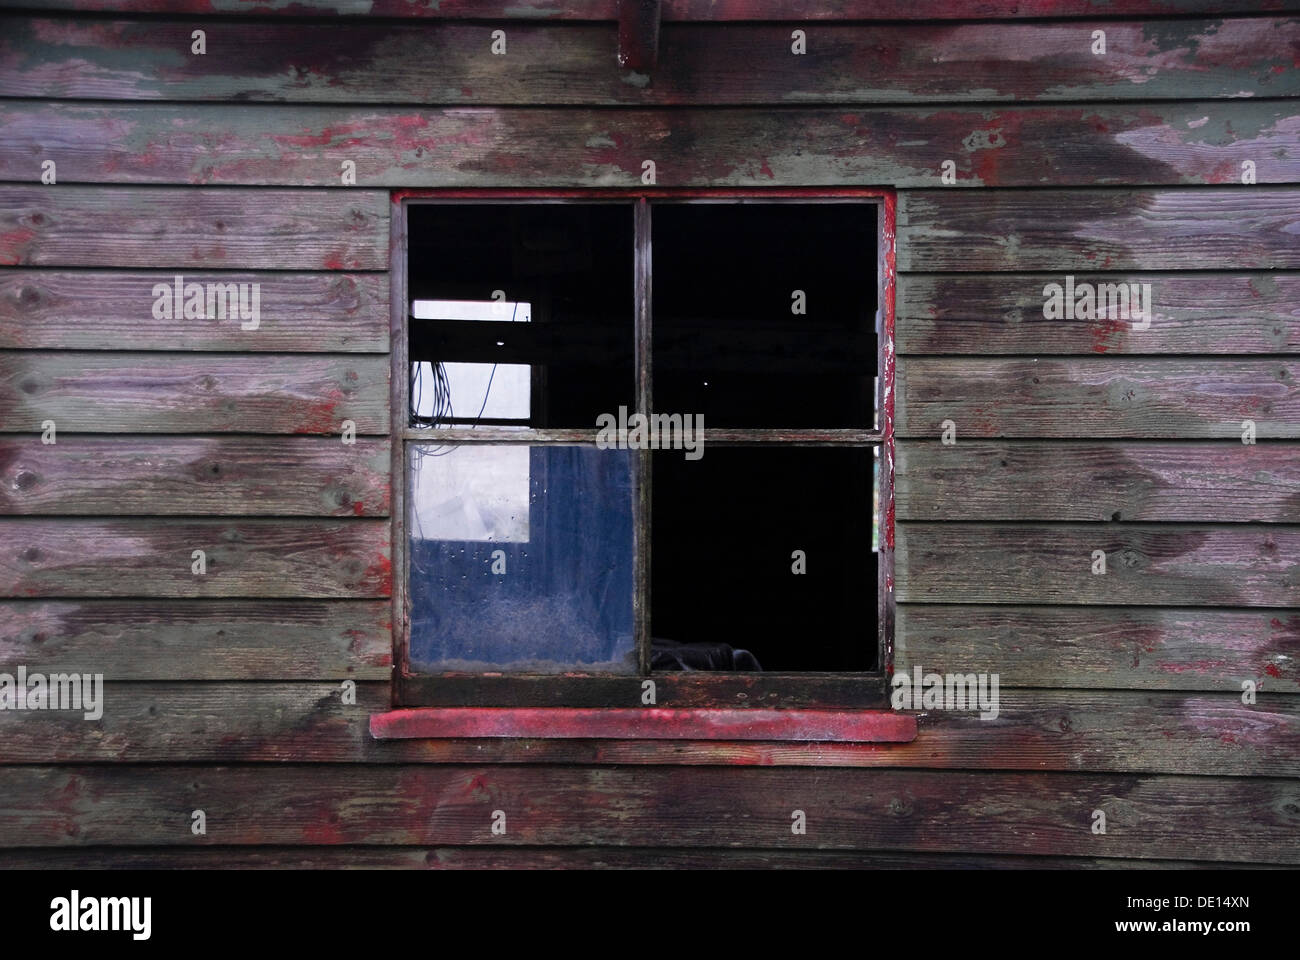 Old window with missing glass panels on a wooden shed - Stock Image